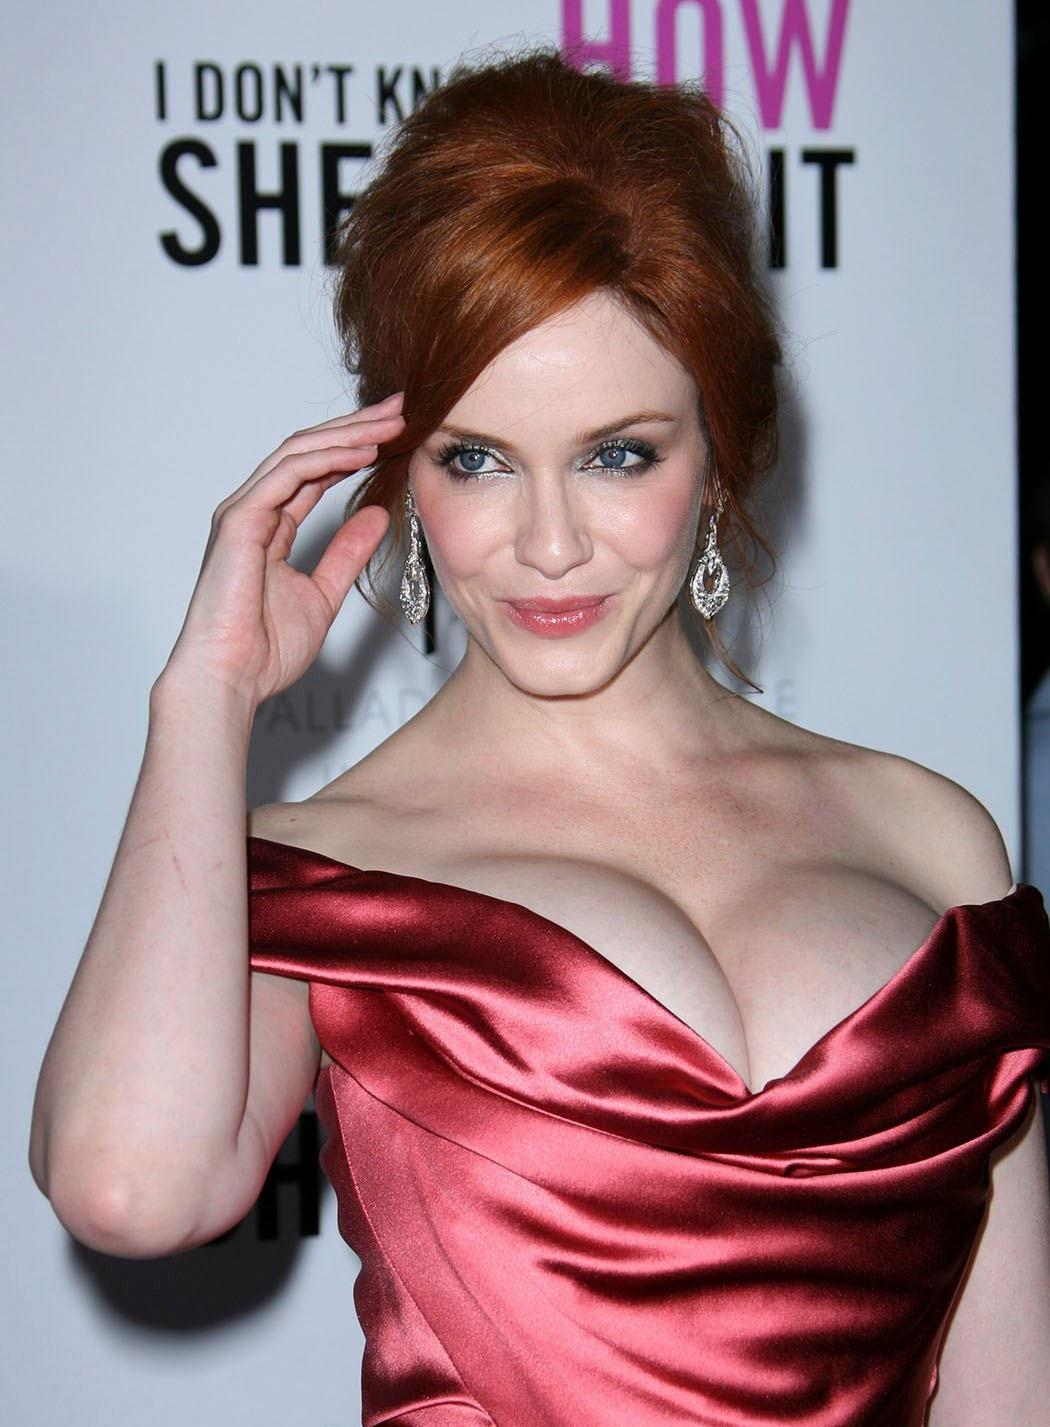 christina-hendricks-boobs-size